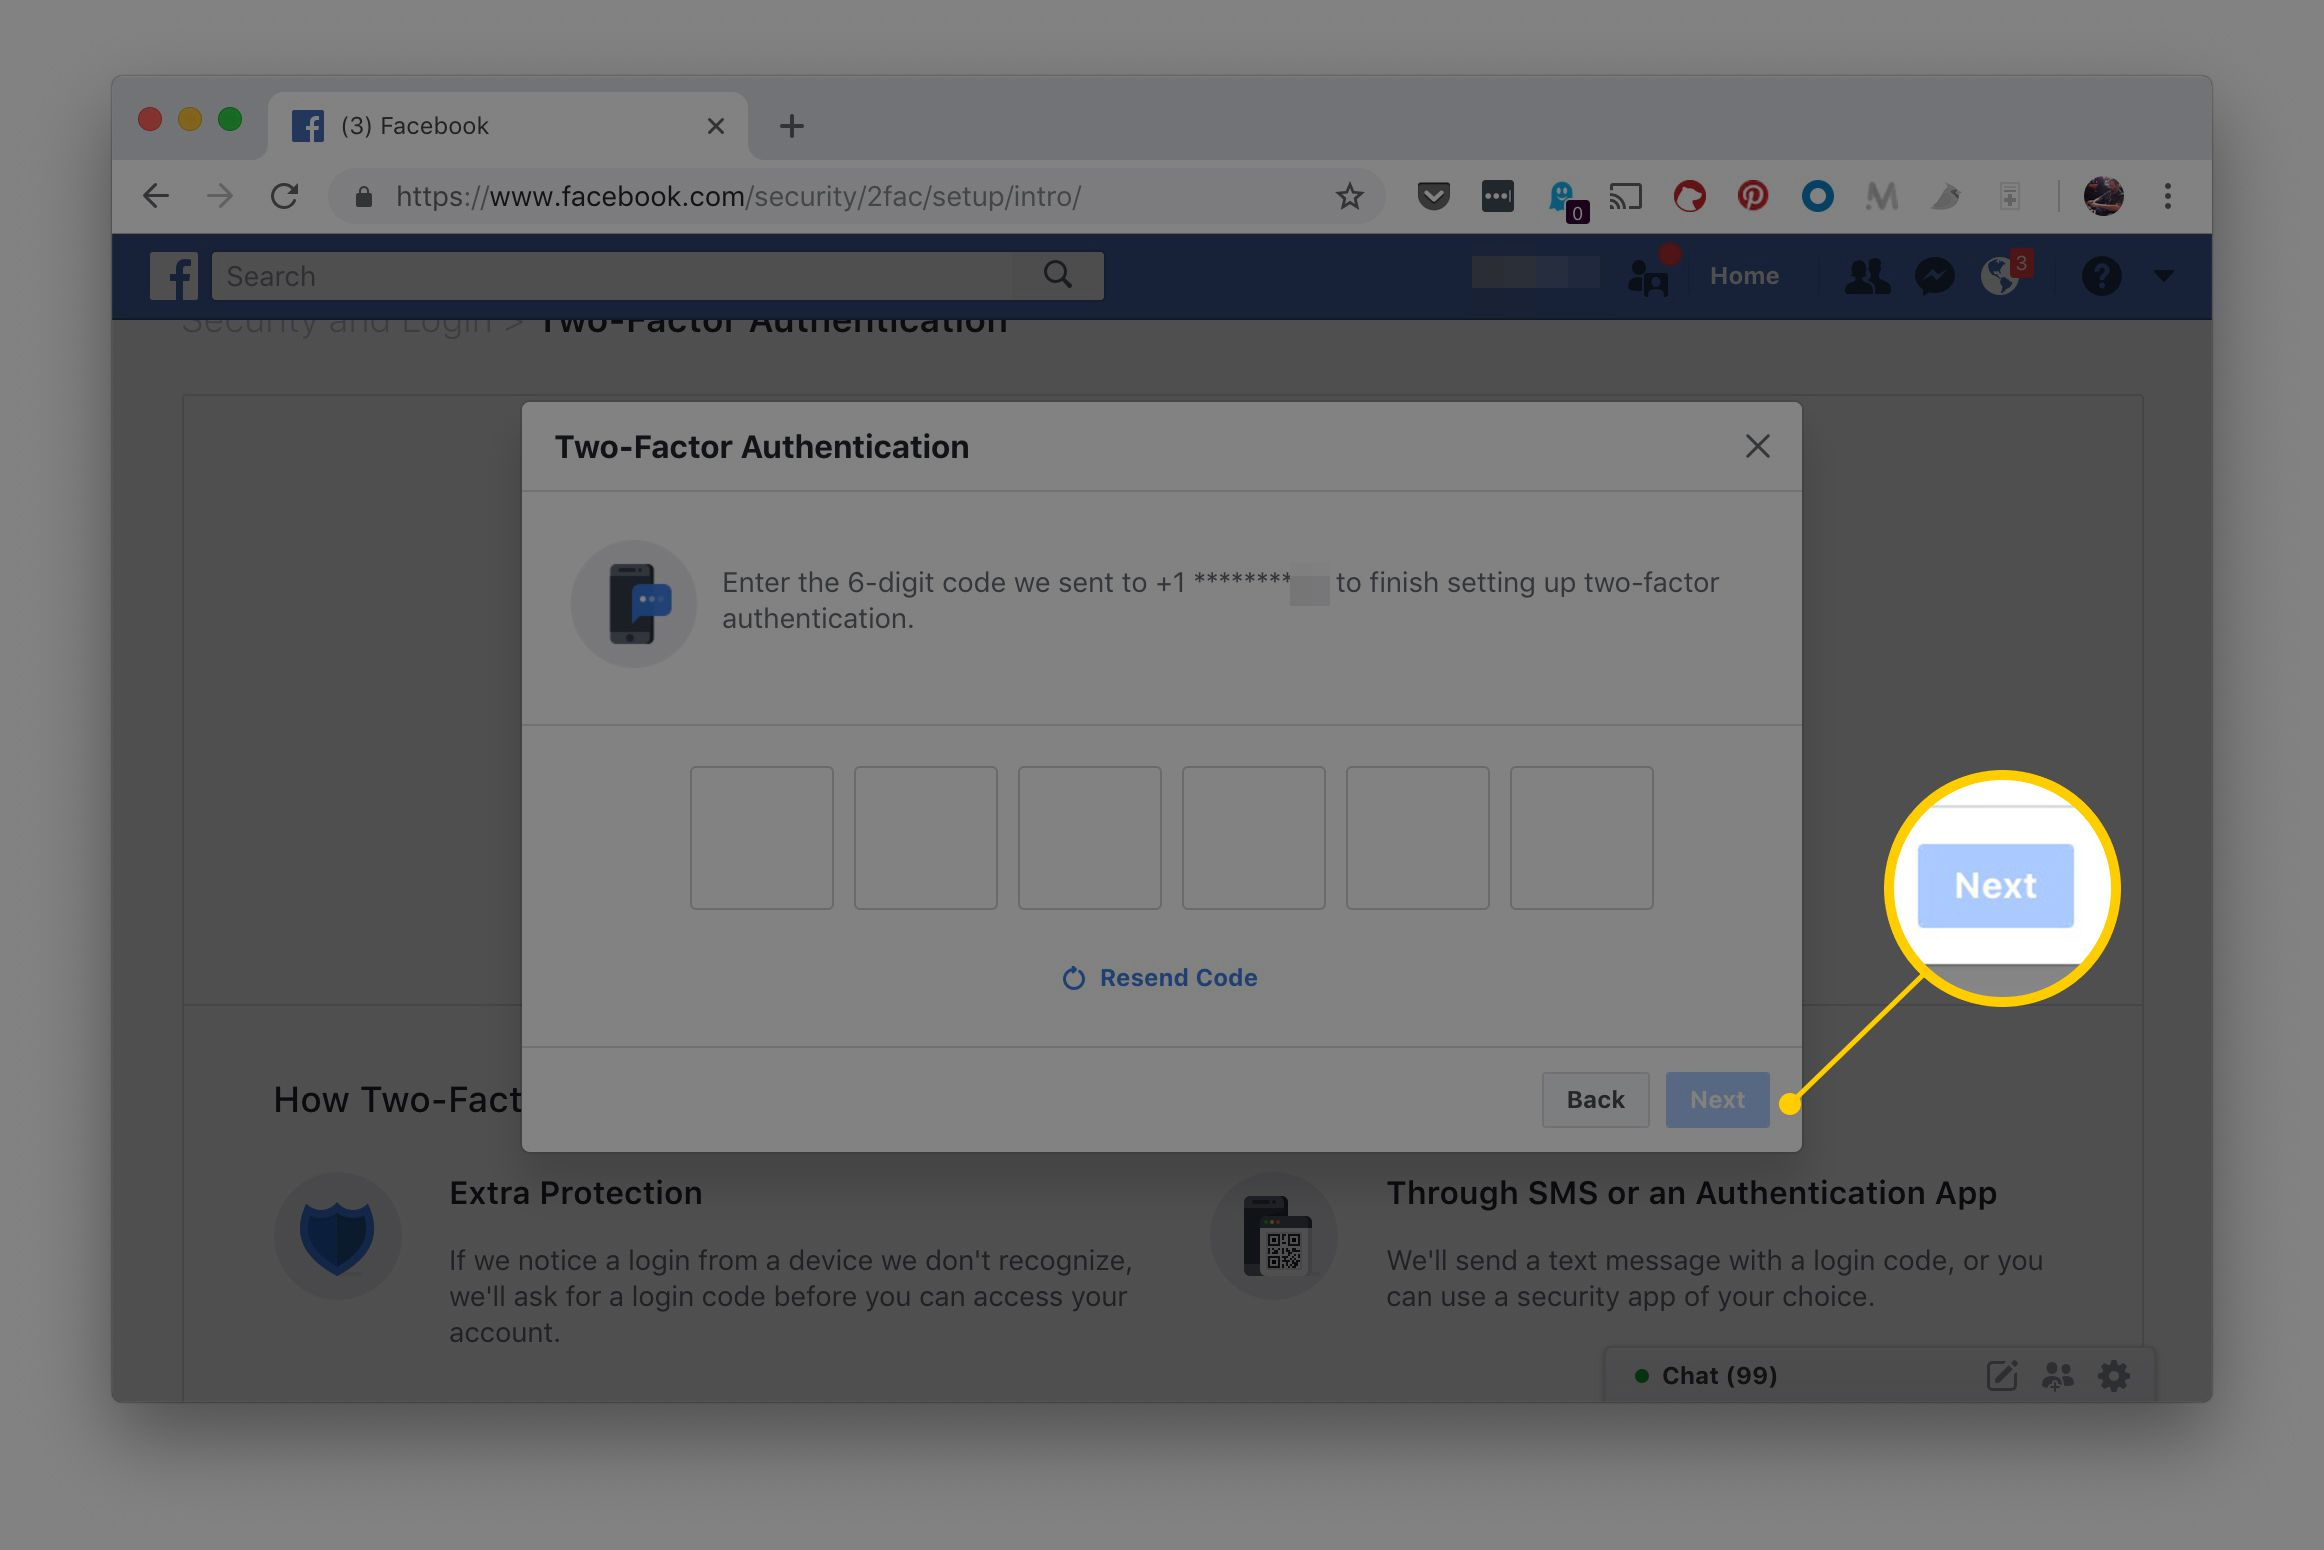 Hacked Facebook Account: Immediate Recovery Steps